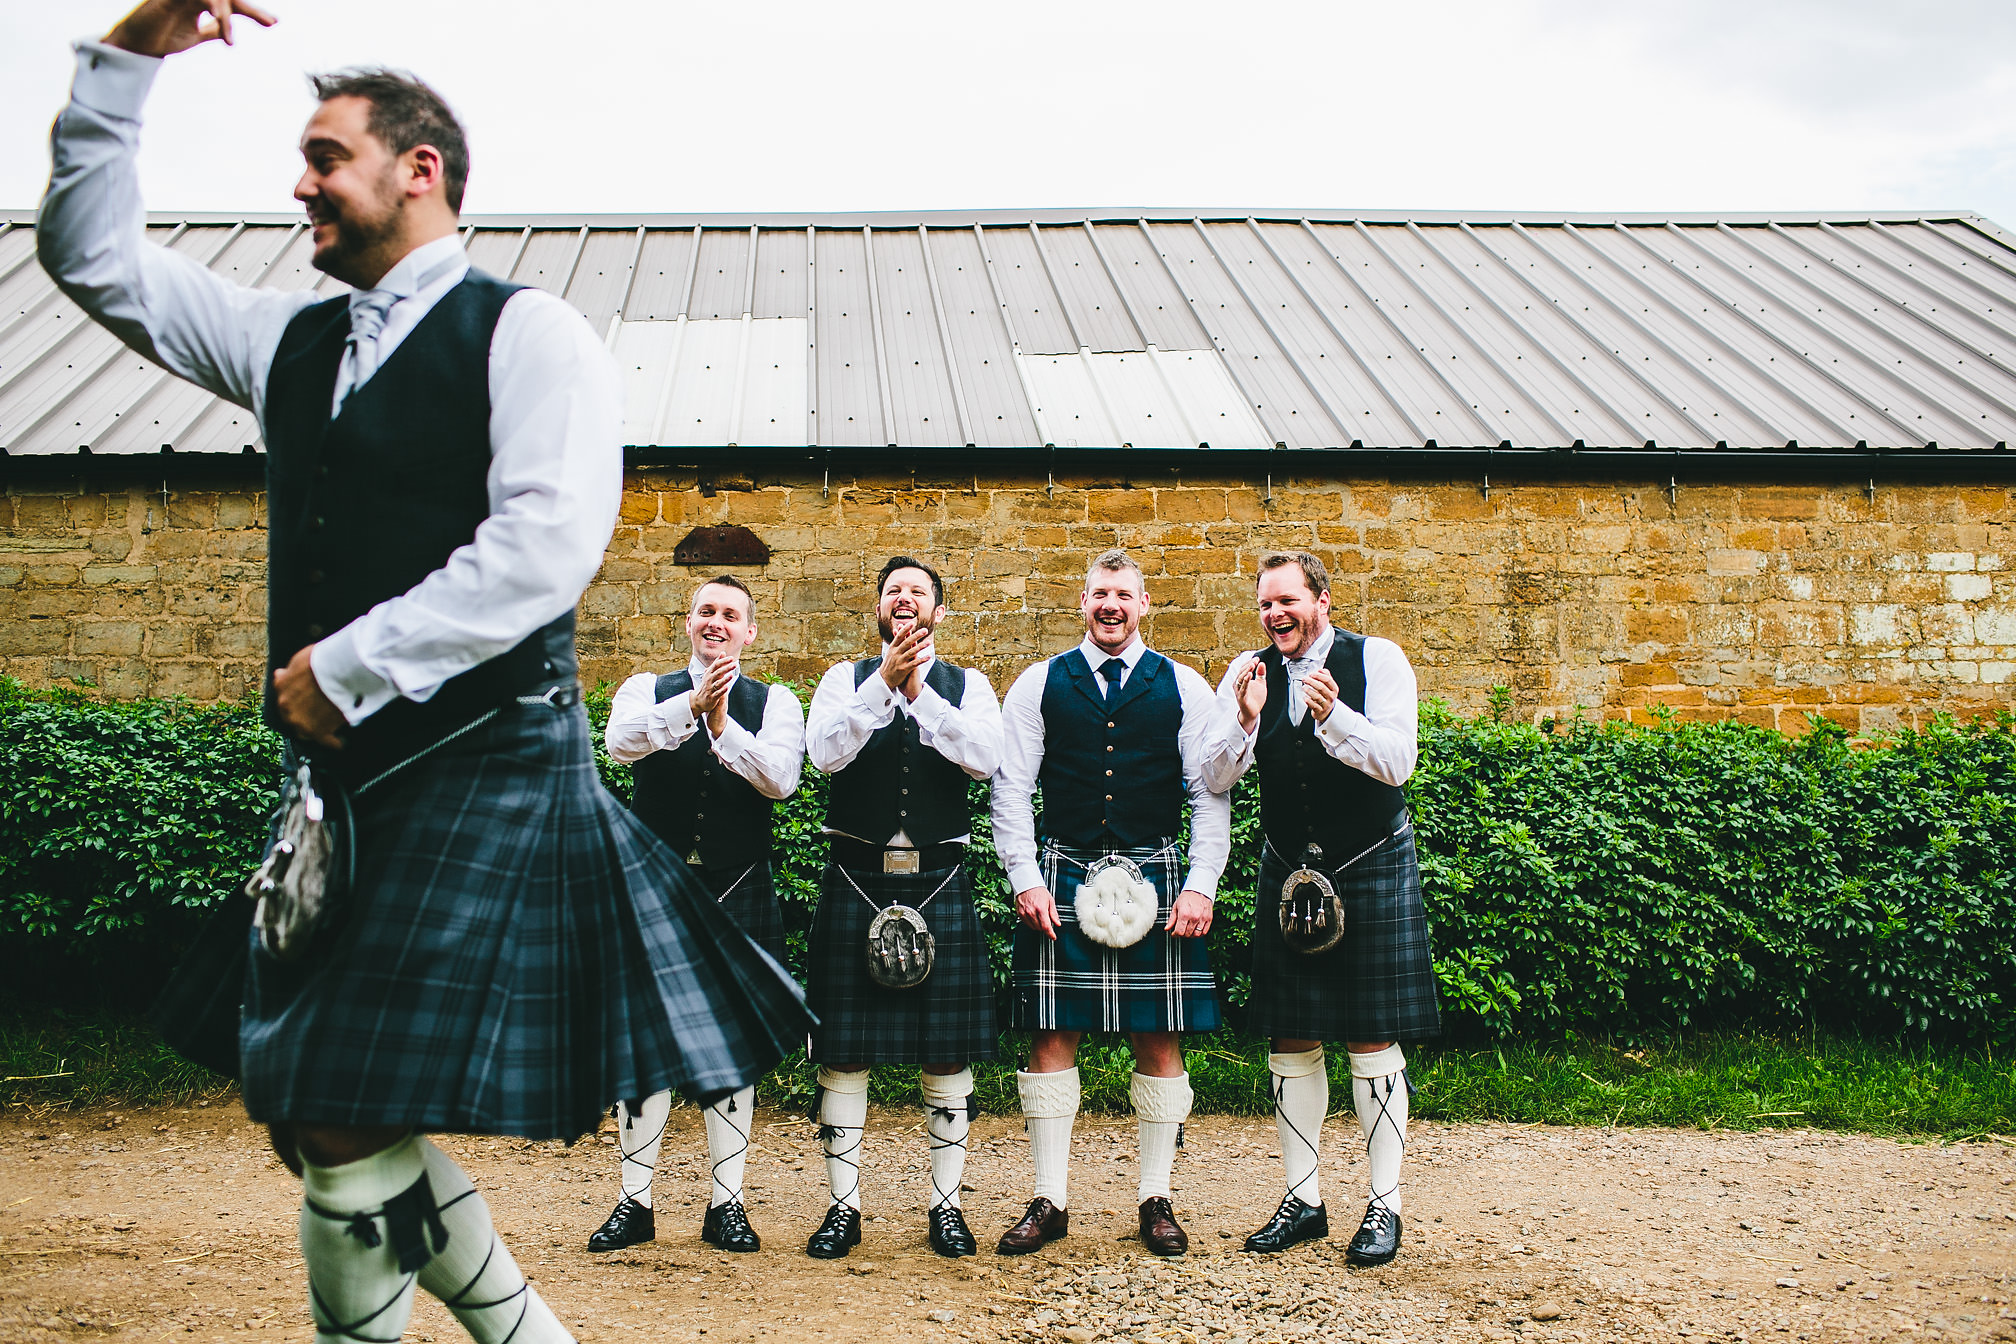 Groomsman with kilt dancing